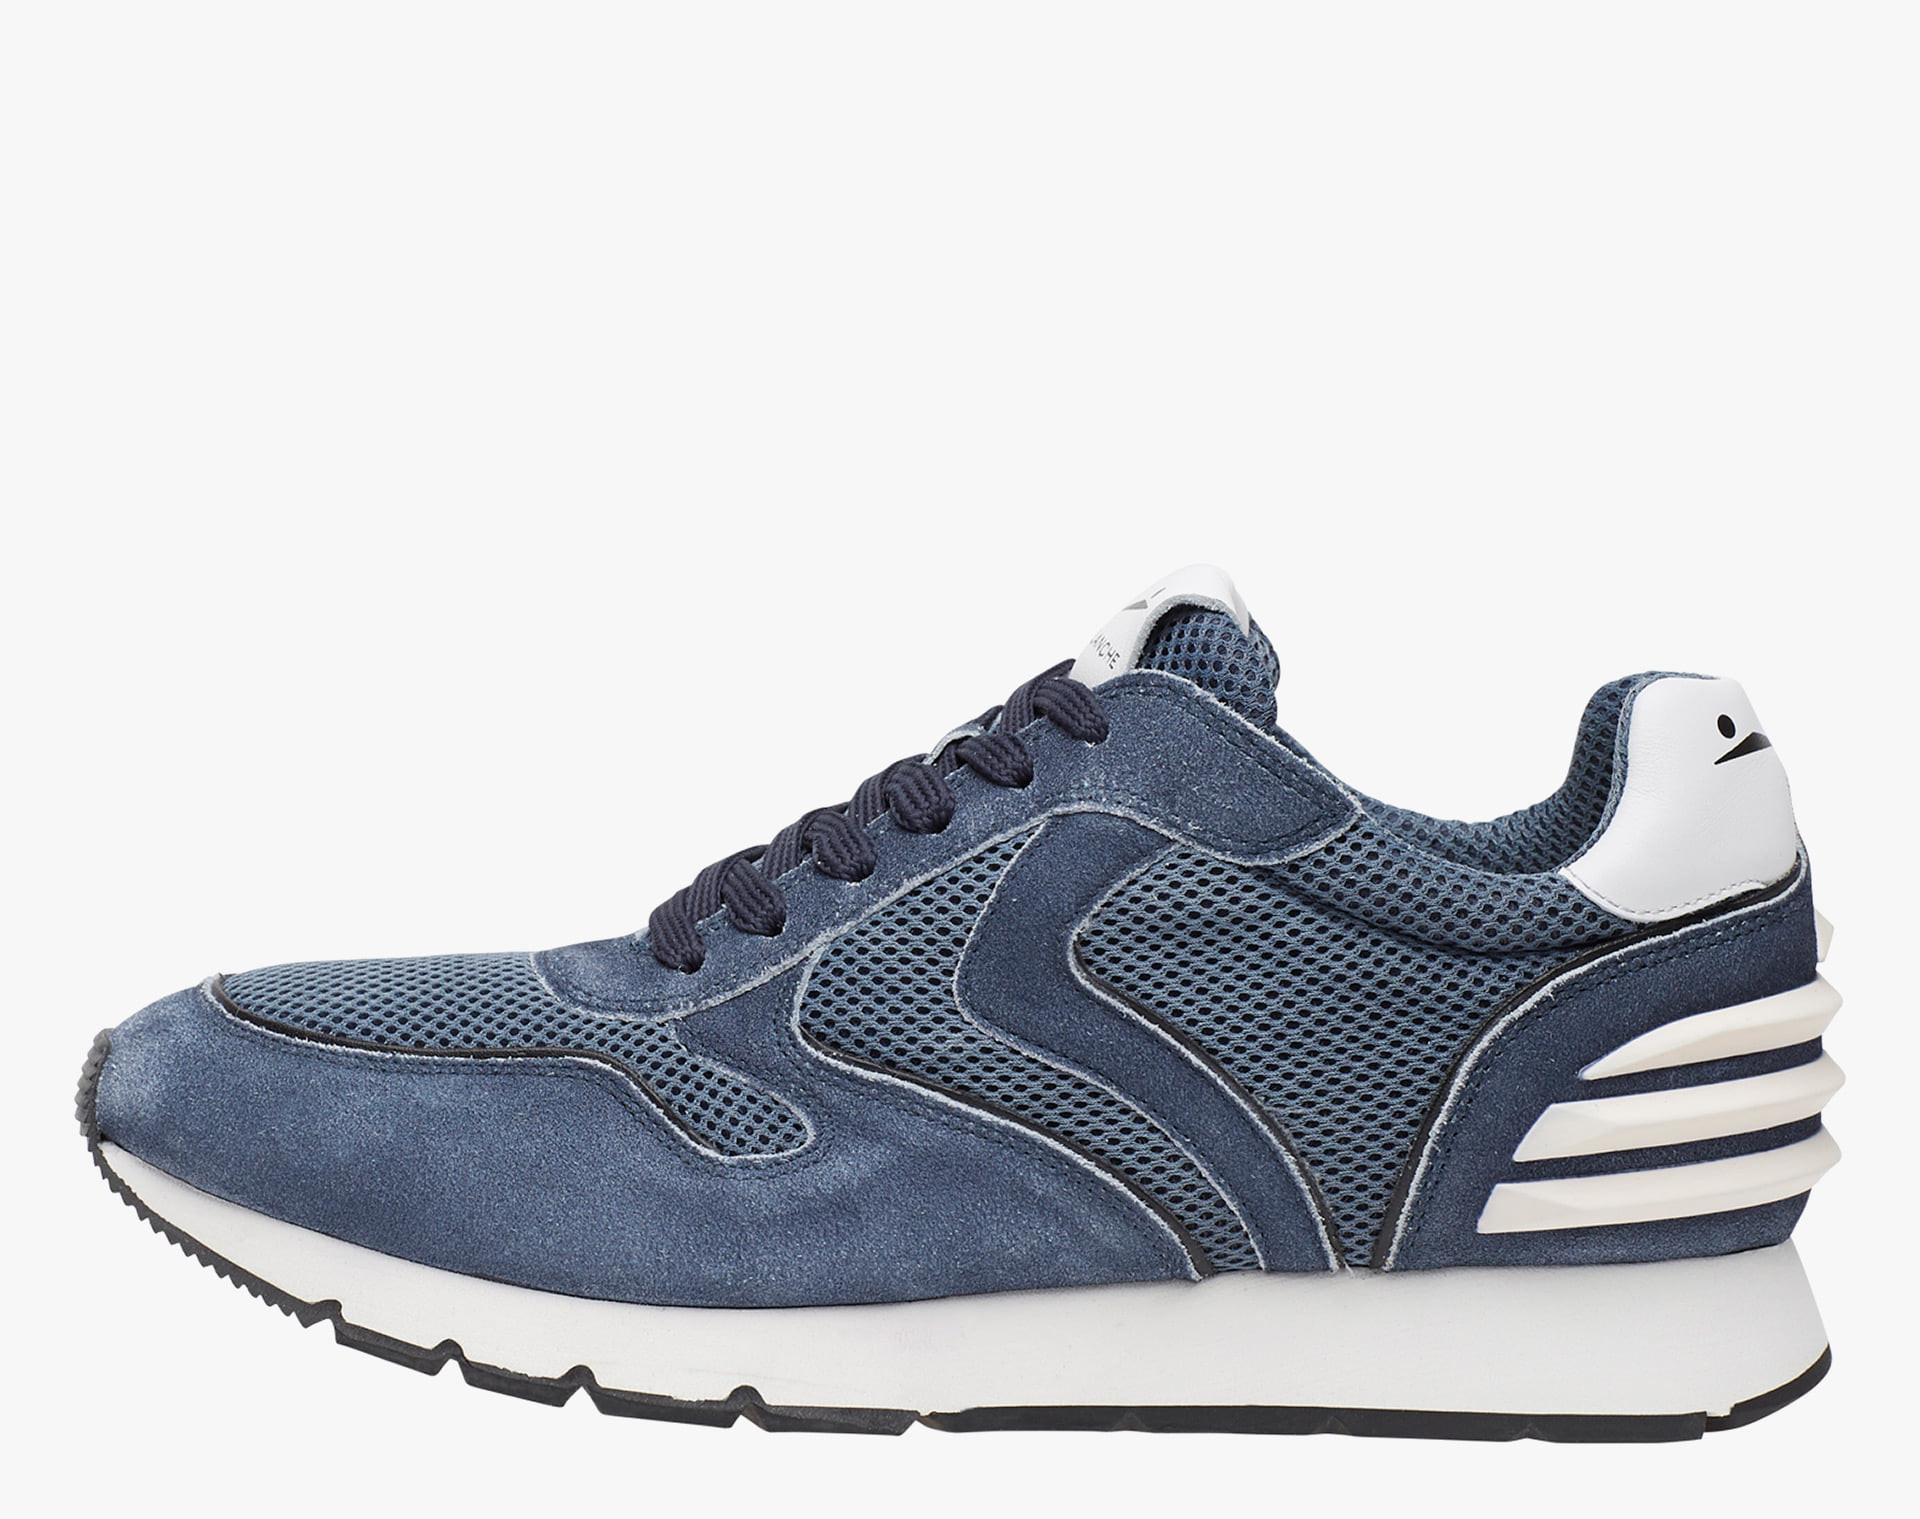 LIAM POWER - Suede and technical fabric sneakers - Blue